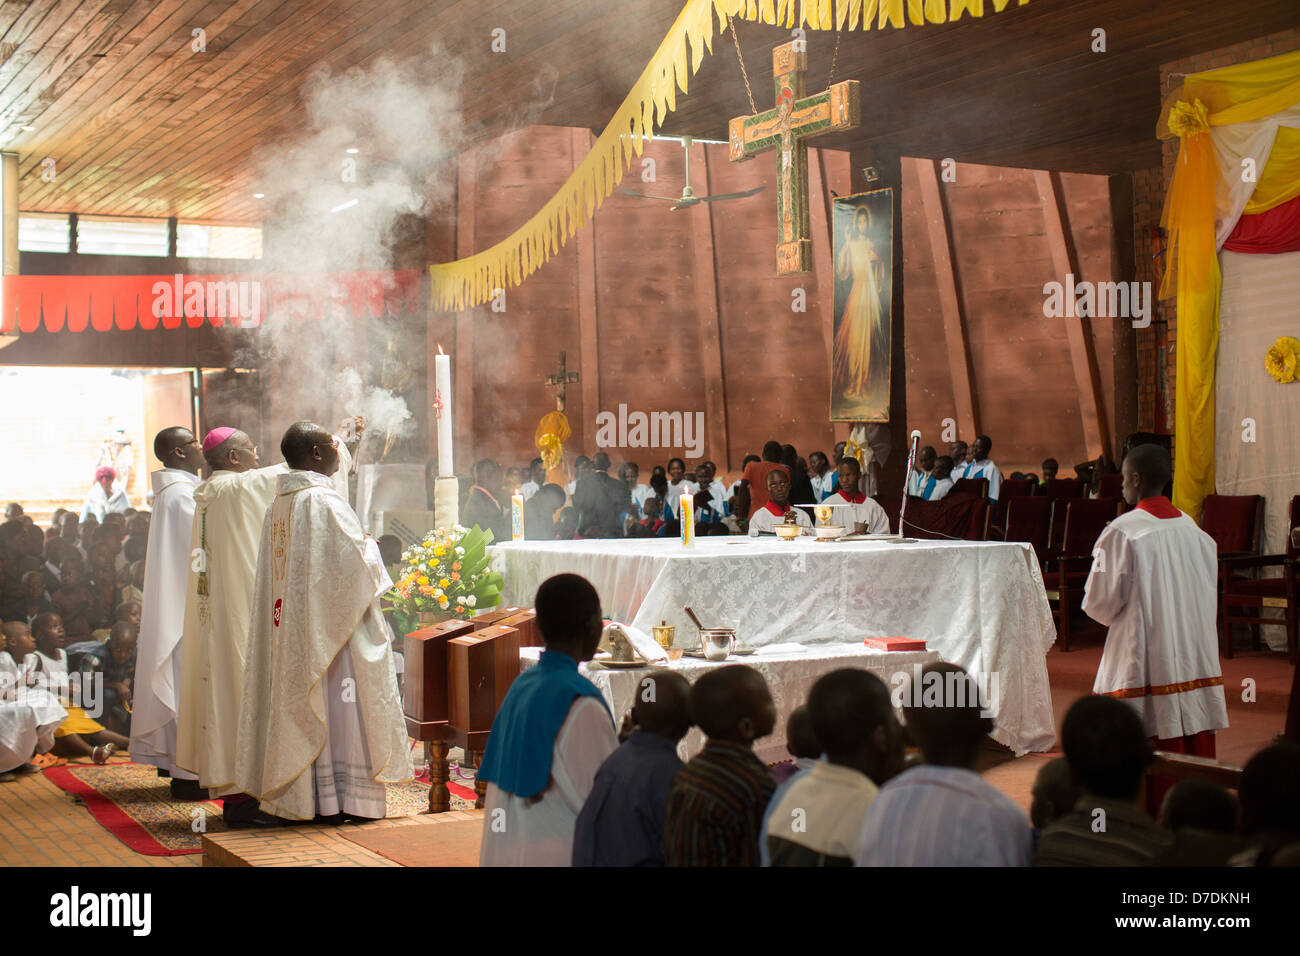 Roman Catholic Priest Mass Stock Photos & Roman Catholic Priest Mass